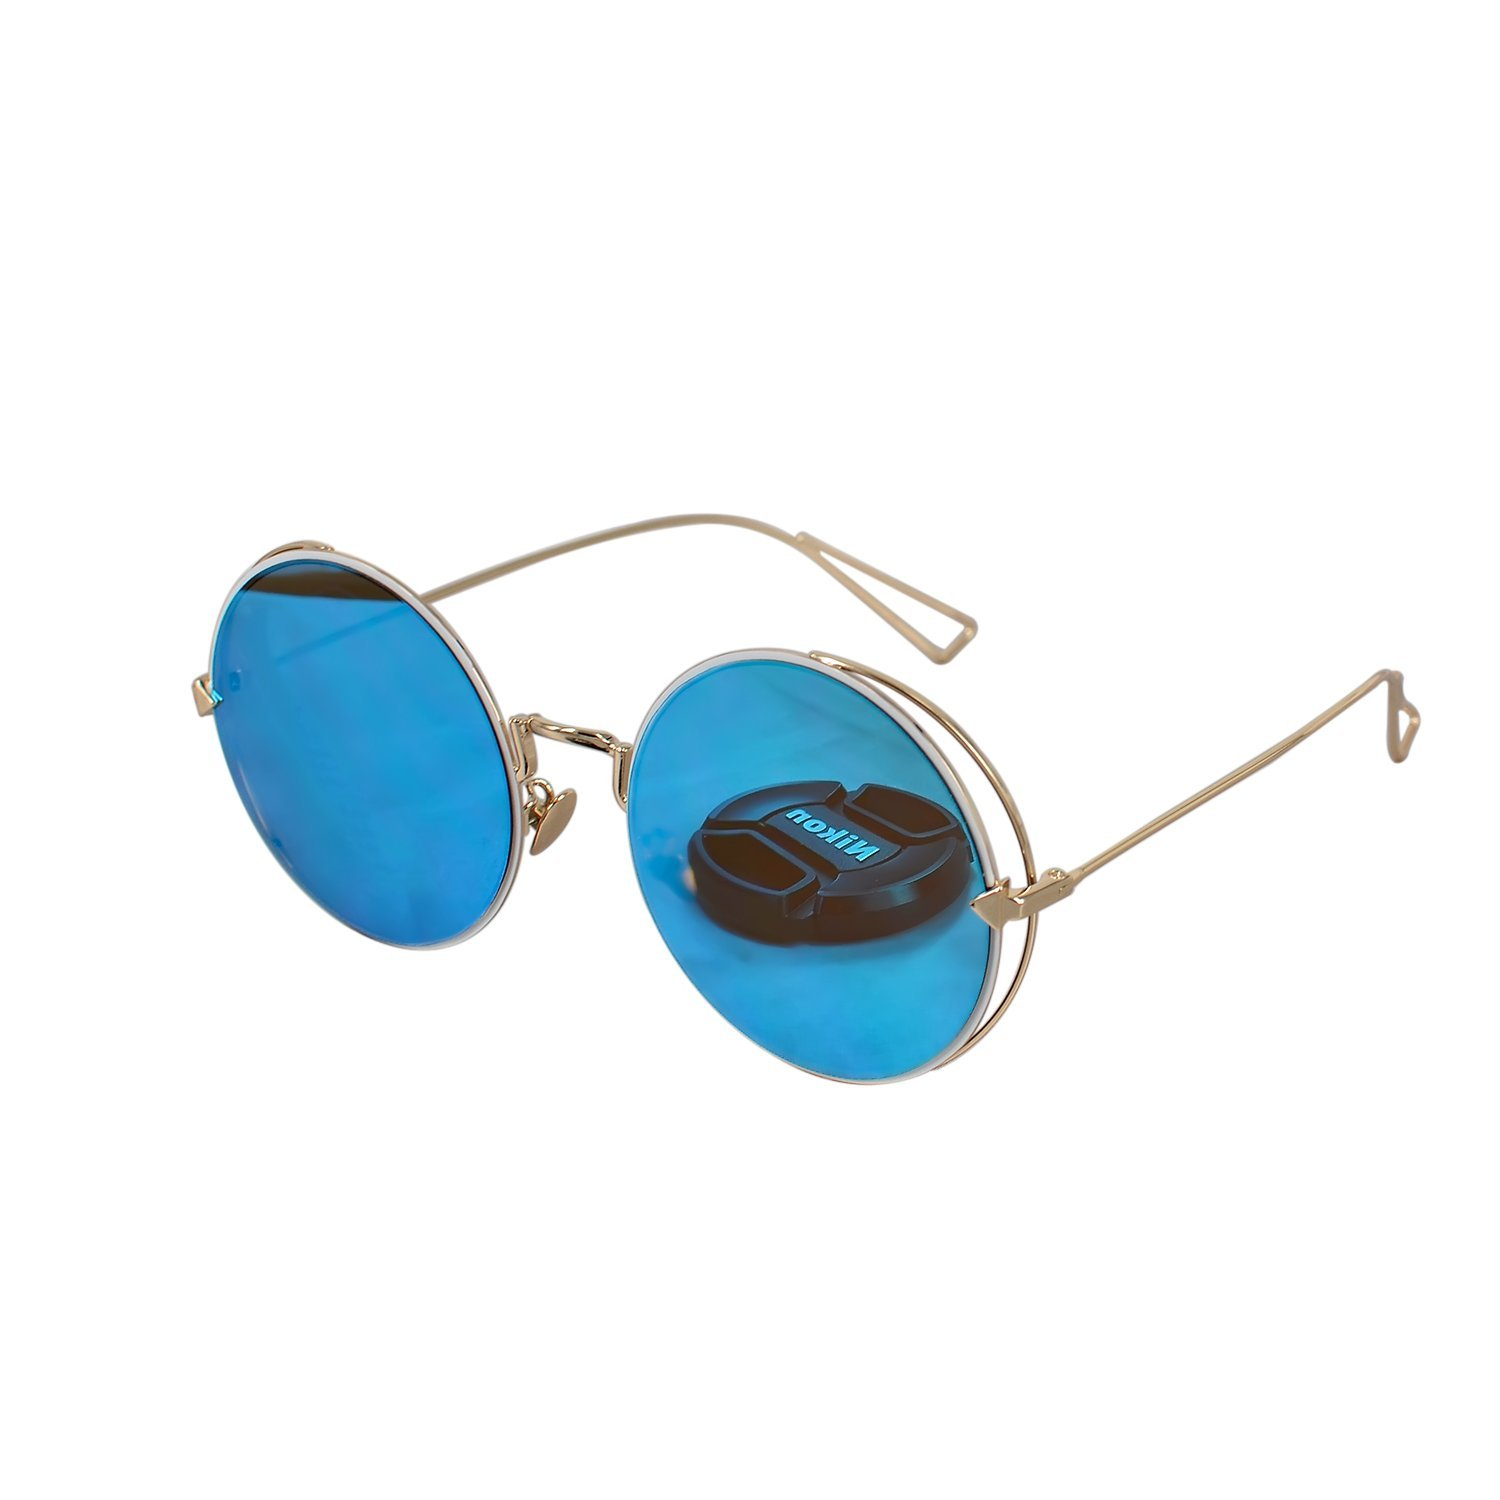 Ucspai Arrow Round Frame Sunglasses in Blue Reflective Lens